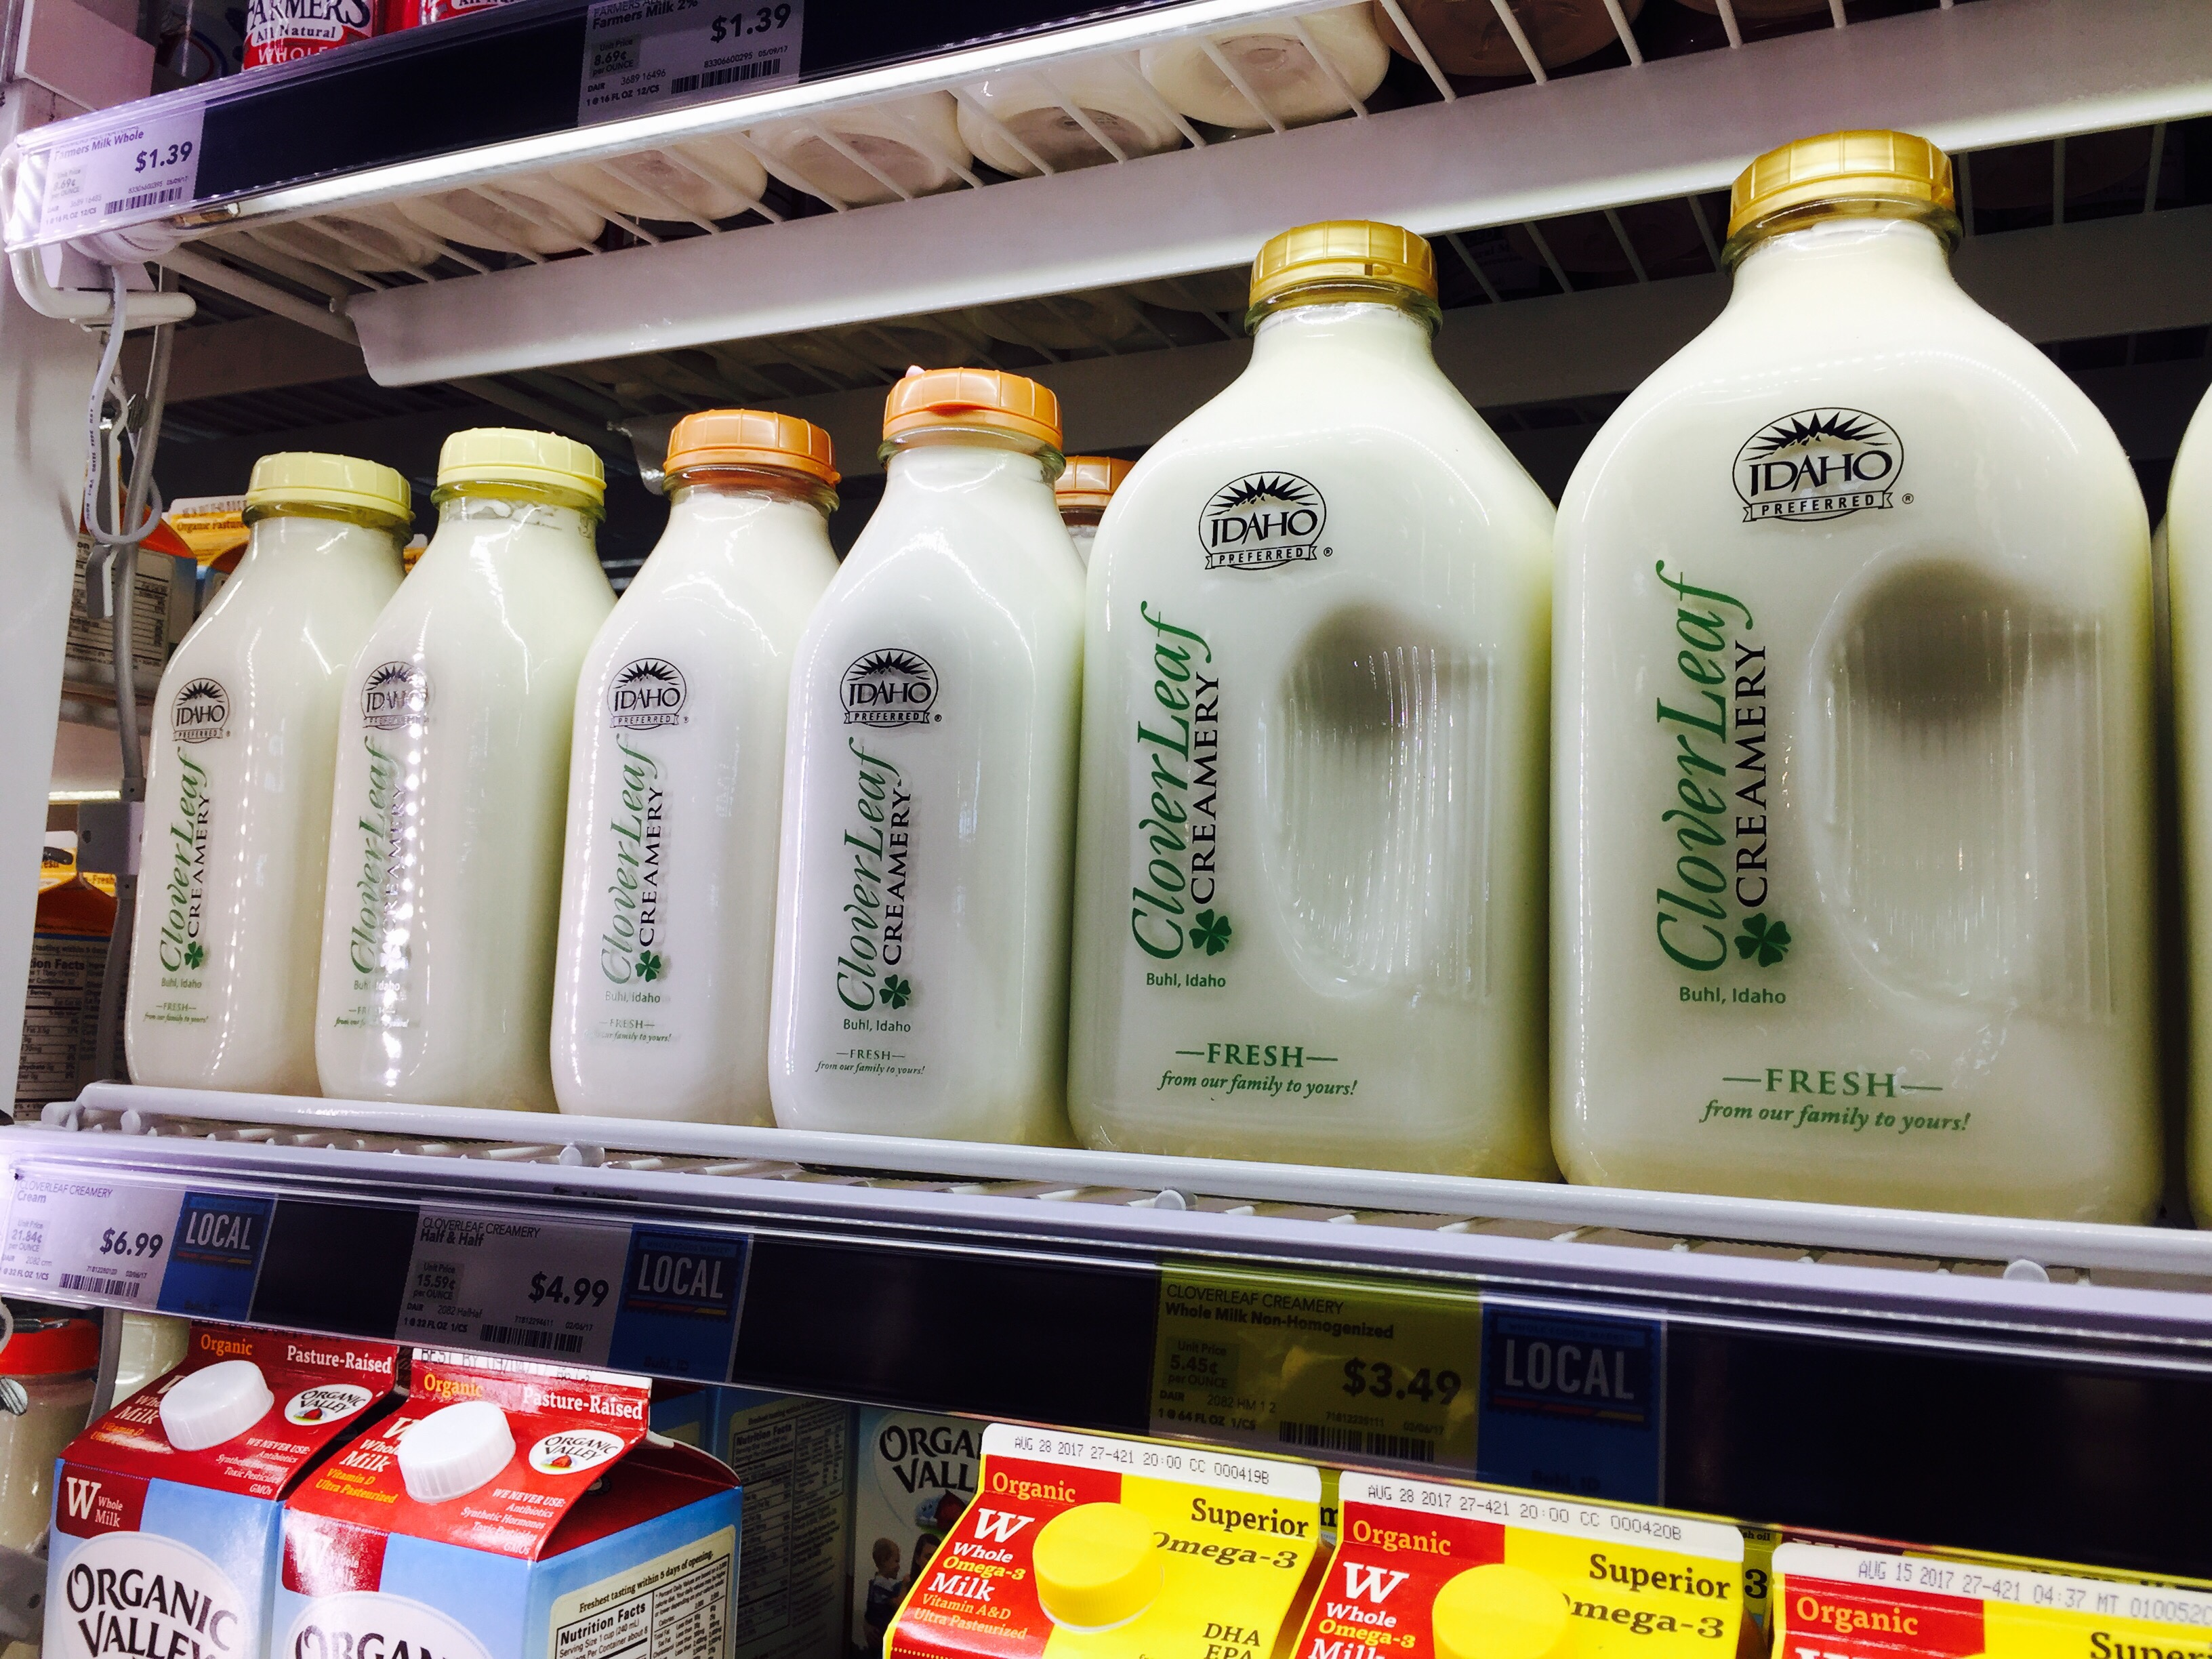 17 practical ways to save at whole foods market – glass bottles with milk in the refrigerated section